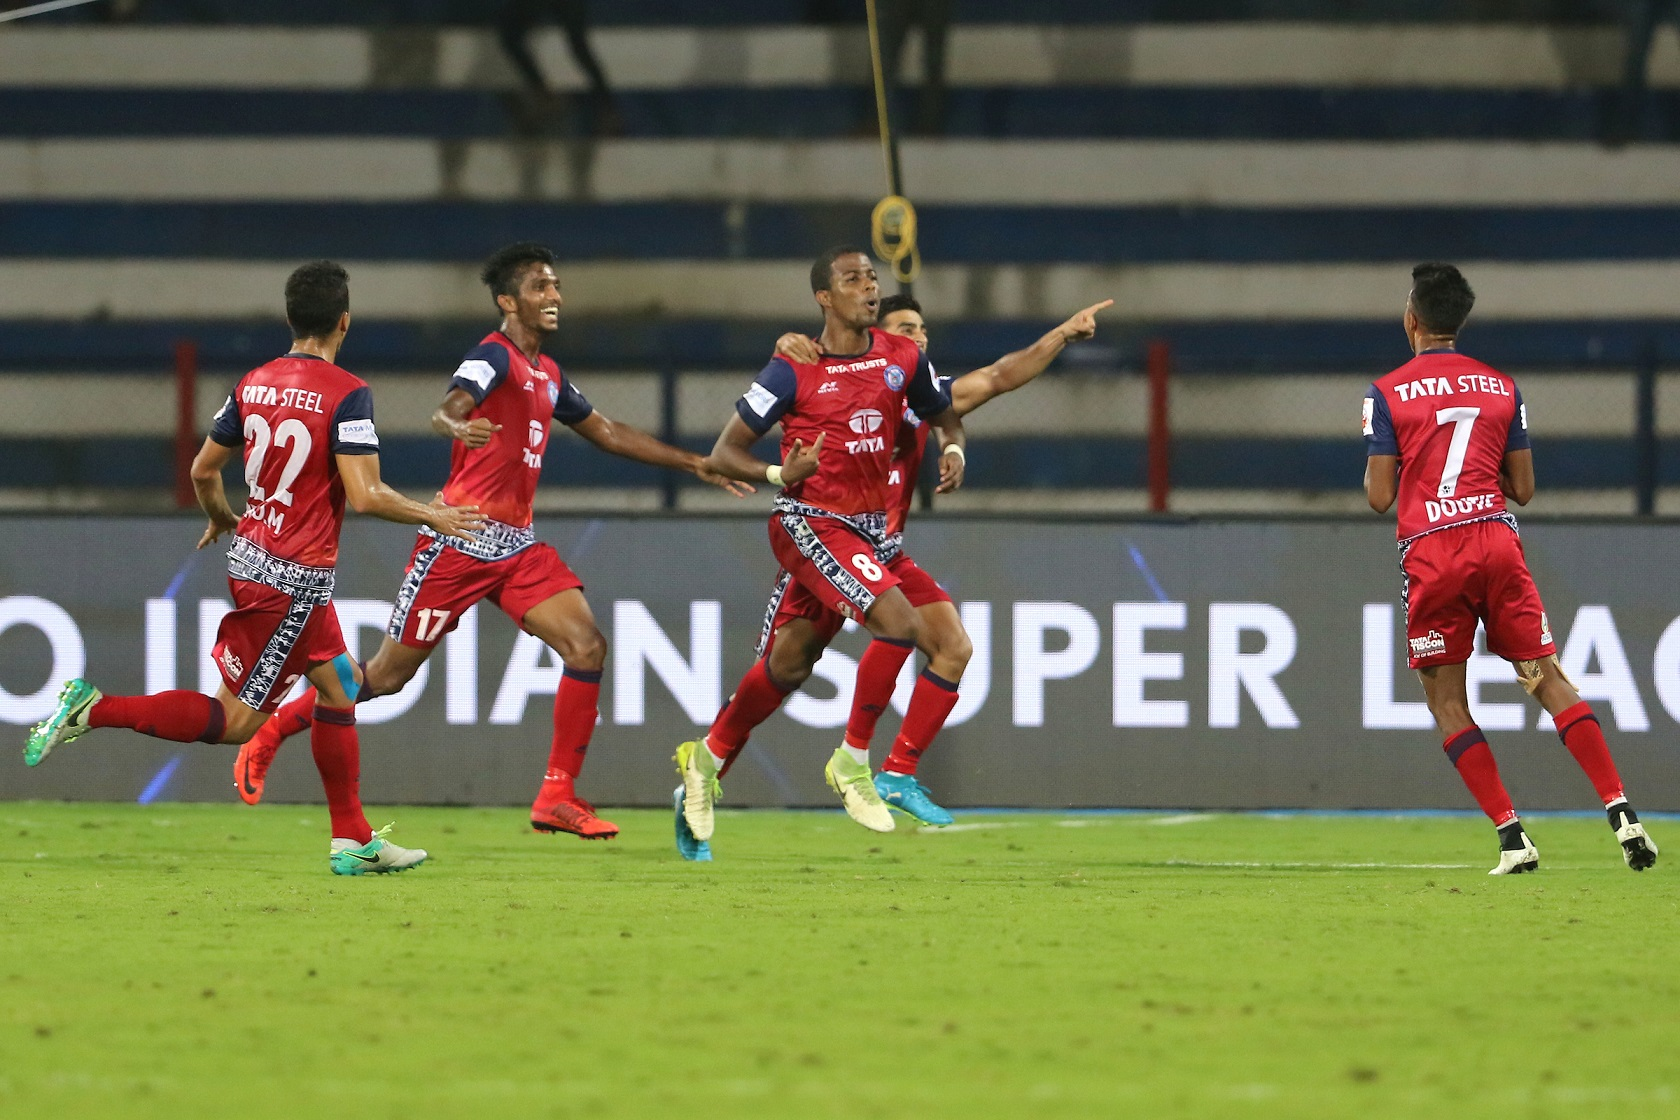 Trindade of Jamshedpur FC celebrates a goal with his teammates during match 29 of the Hero Indian Super League between Bengaluru FC and Jamshedpur FC held at the Sree Kanteerava Stadium, Bangalore, India on the 21st December 2017 Photo by: Vipin Pawar / ISL / SPORTZPICS